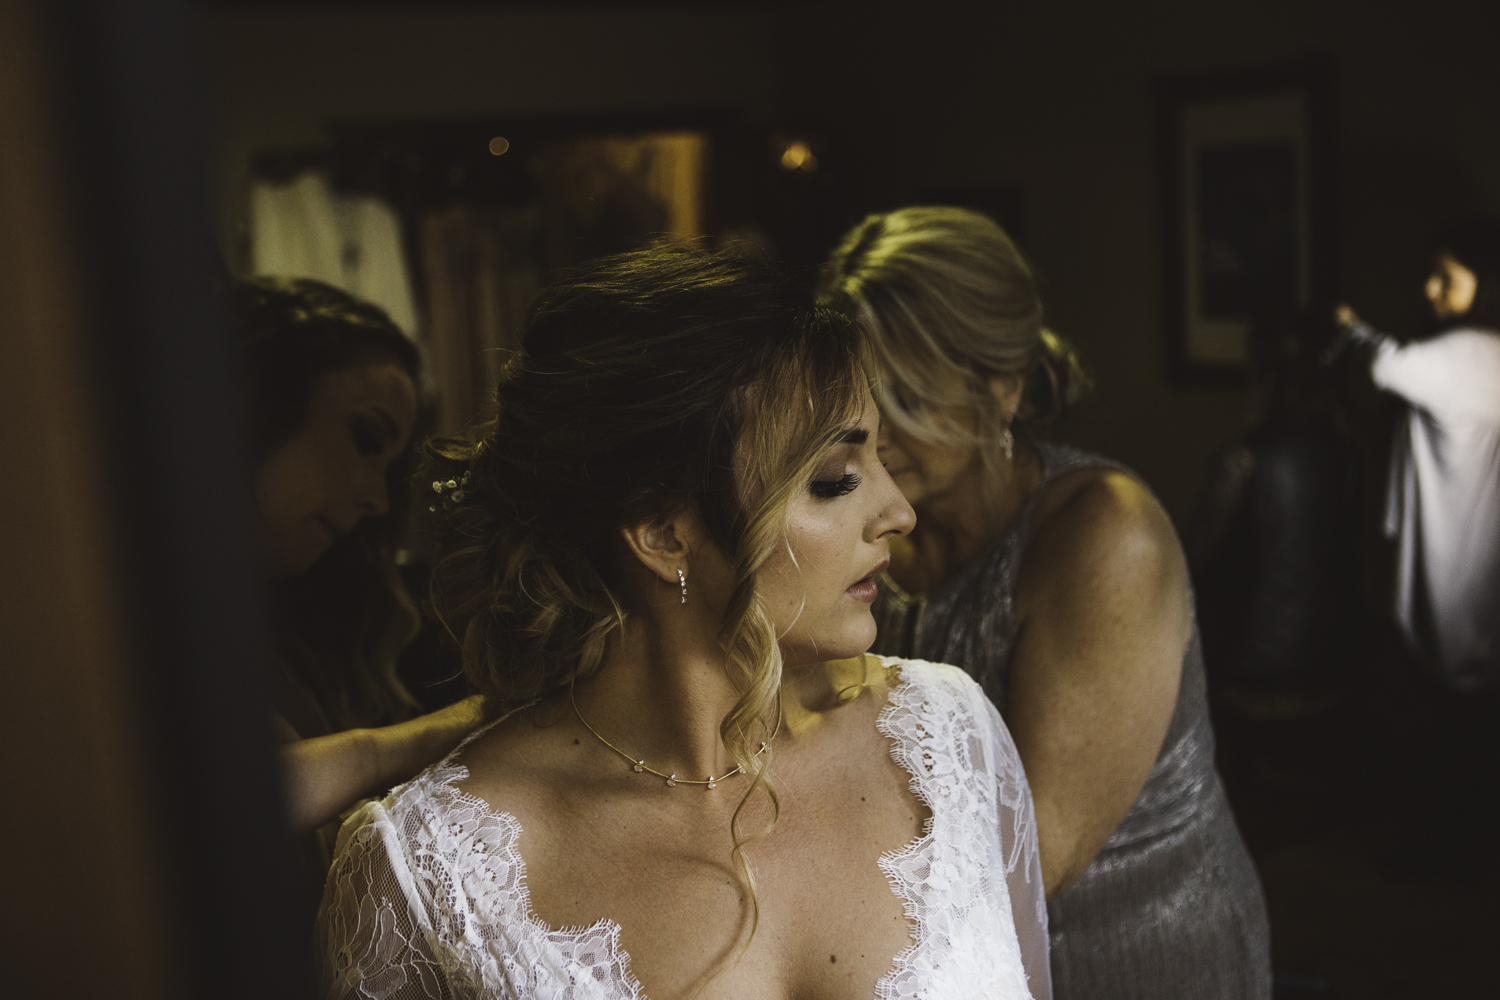 sarah-danielle-photography-intimate-portland-wedding-09.jpg